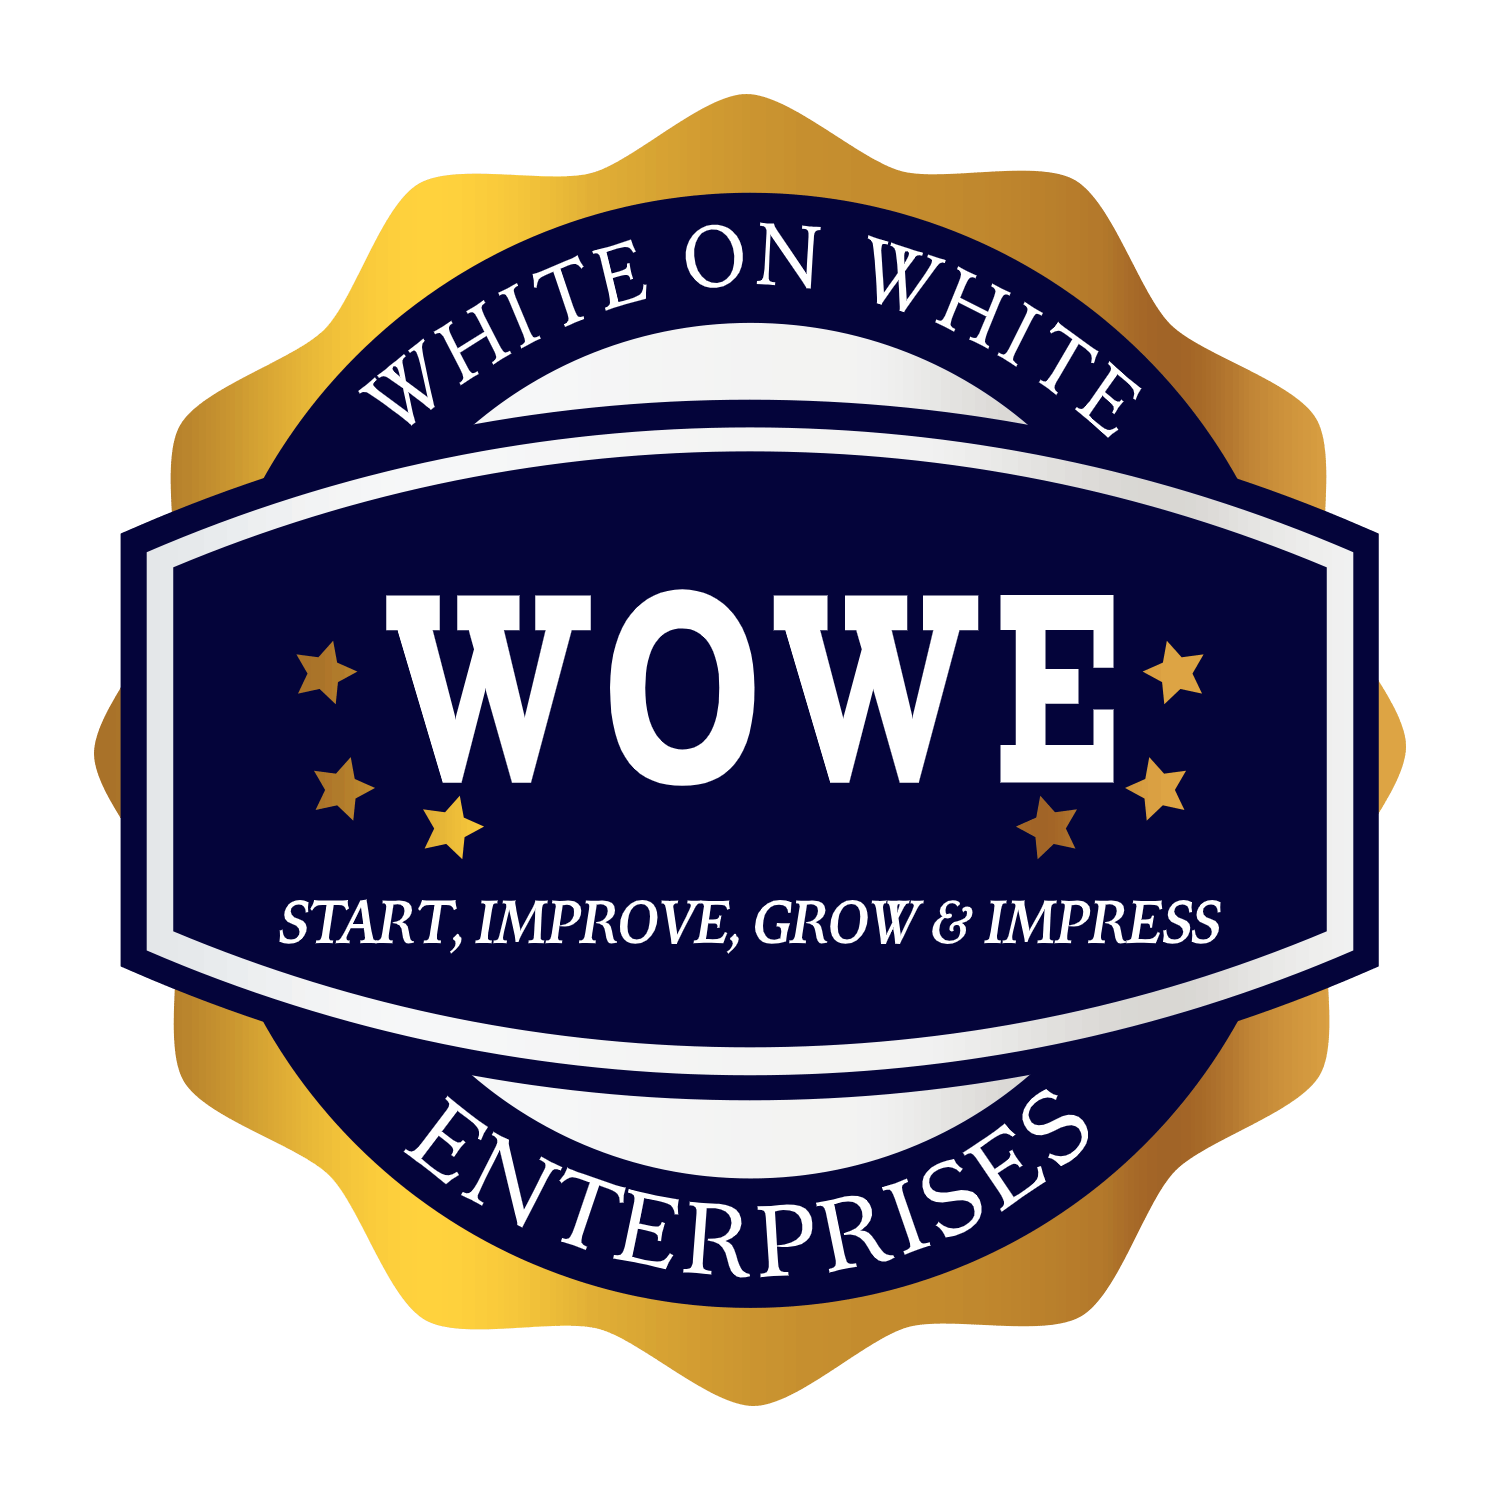 White On White Enterprises